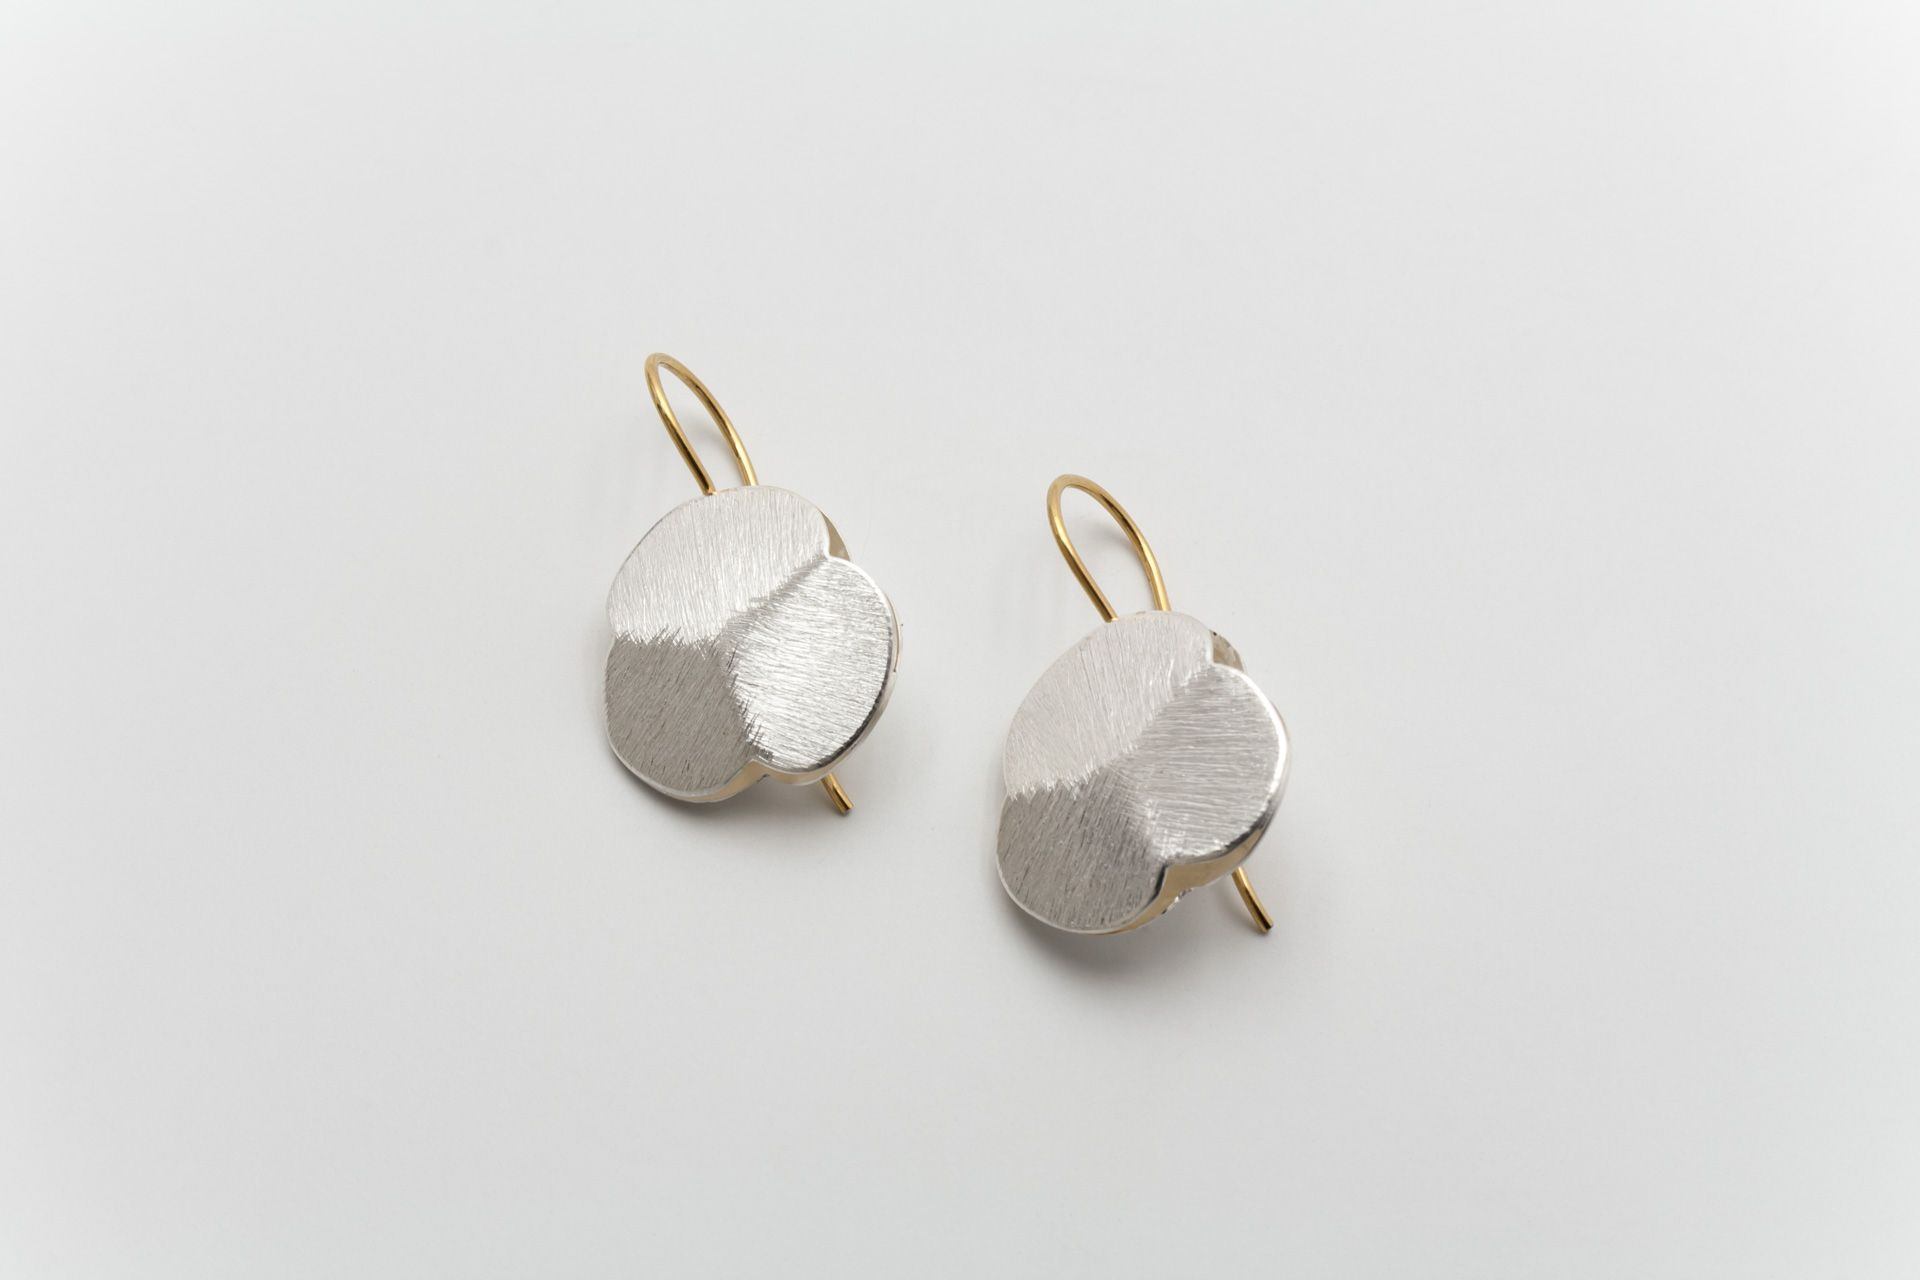 Deco Echo Anna Król Brushed Silver Earrings Gemstones Pearls Contemporary Jewellery